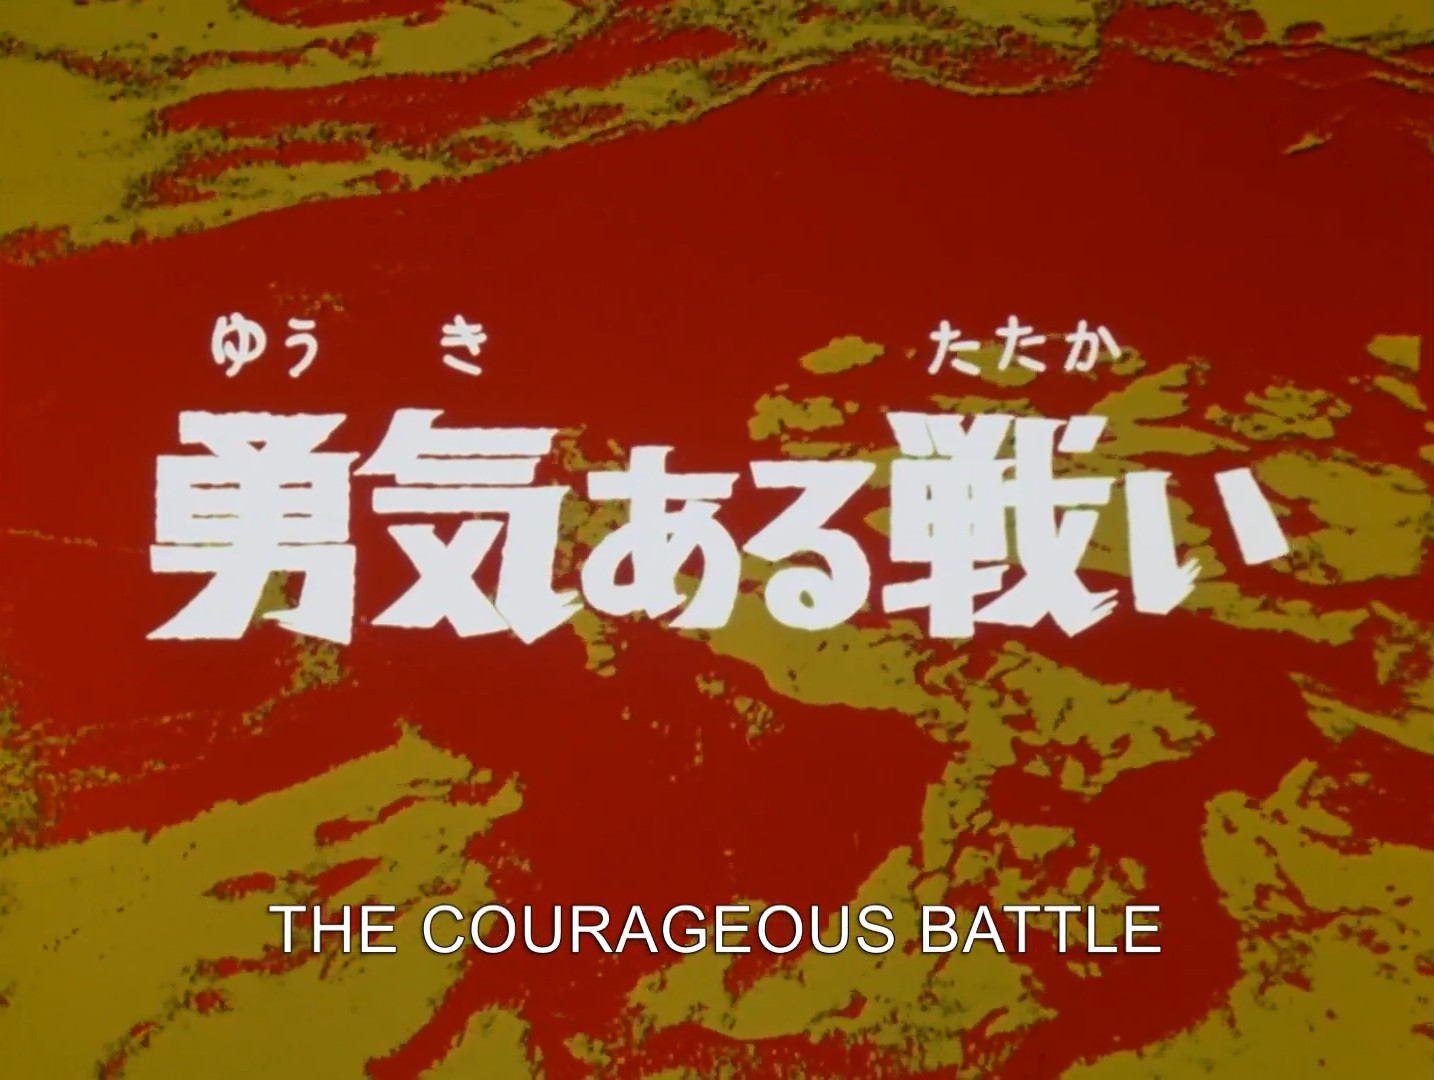 The Courageous Battle